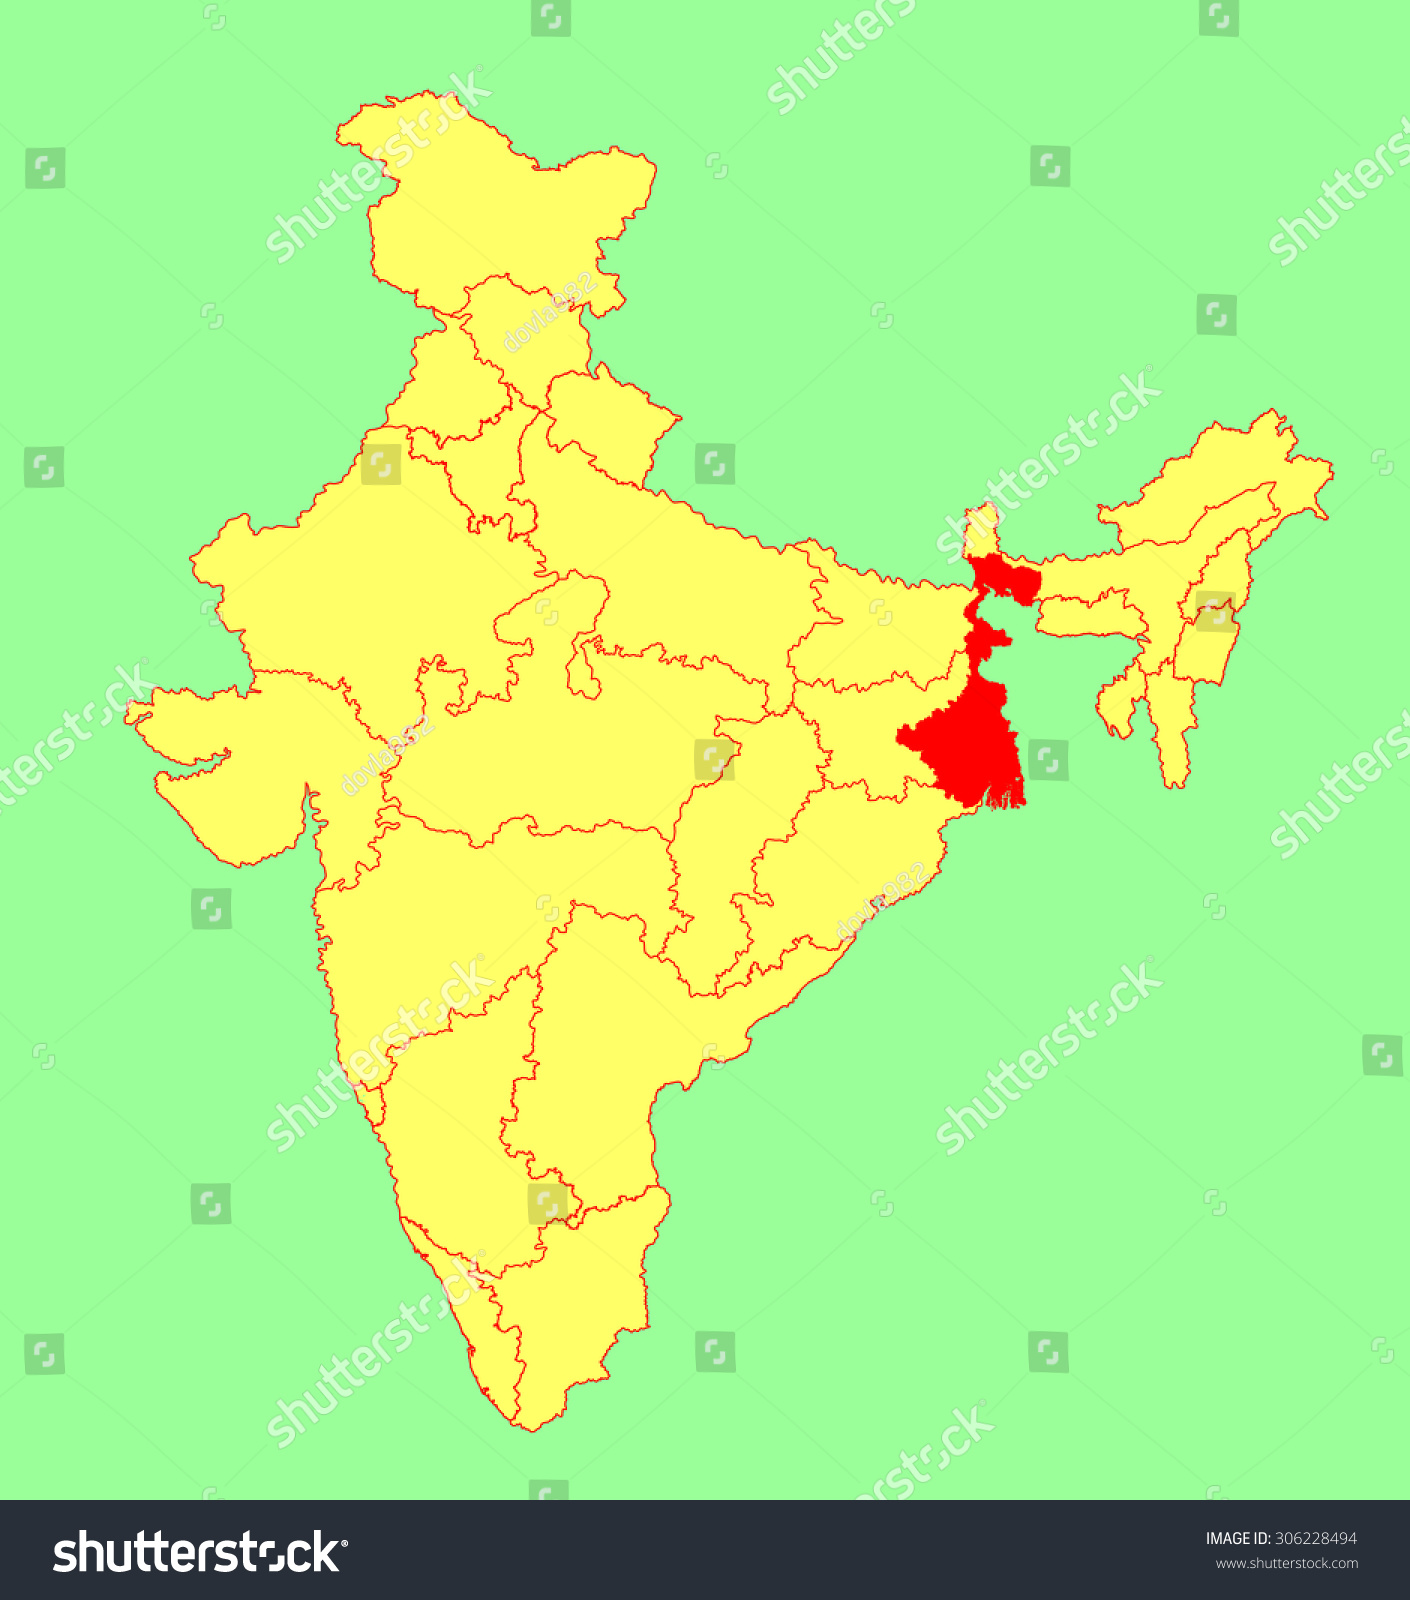 West bengal state india vector map stock vector 306228494 shutterstock west bengal state india vector map silhouette illustration isolated on india map editable gumiabroncs Gallery